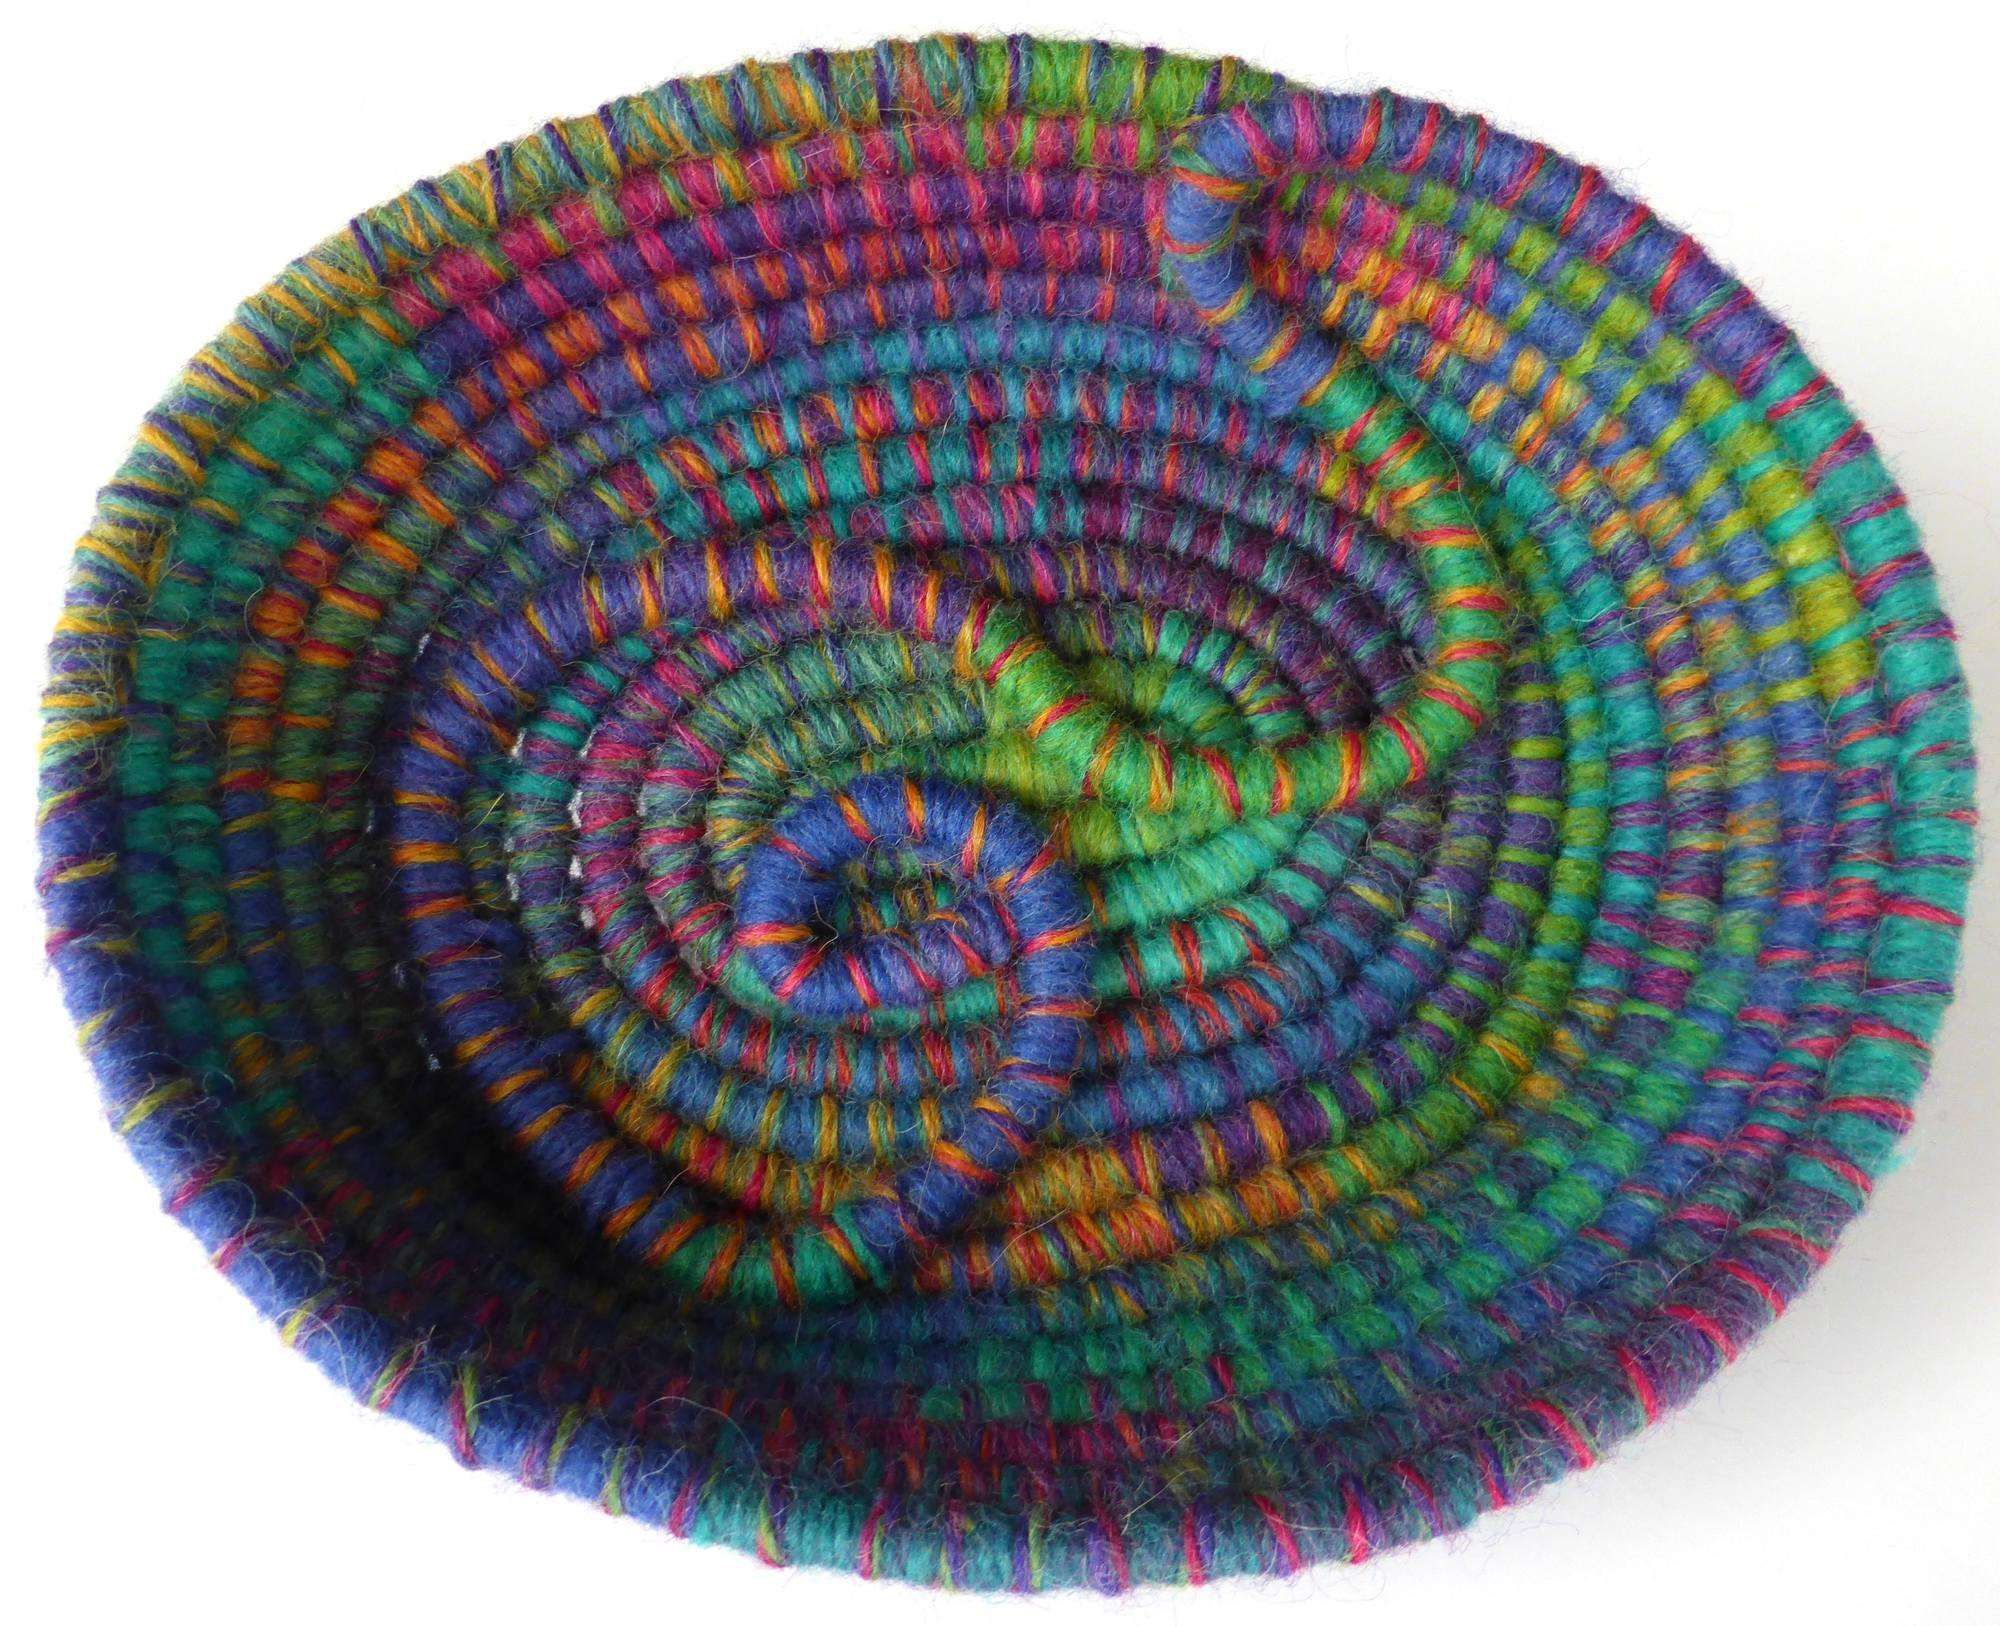 Opal Coil Basket (2014) by Andrea McCallum